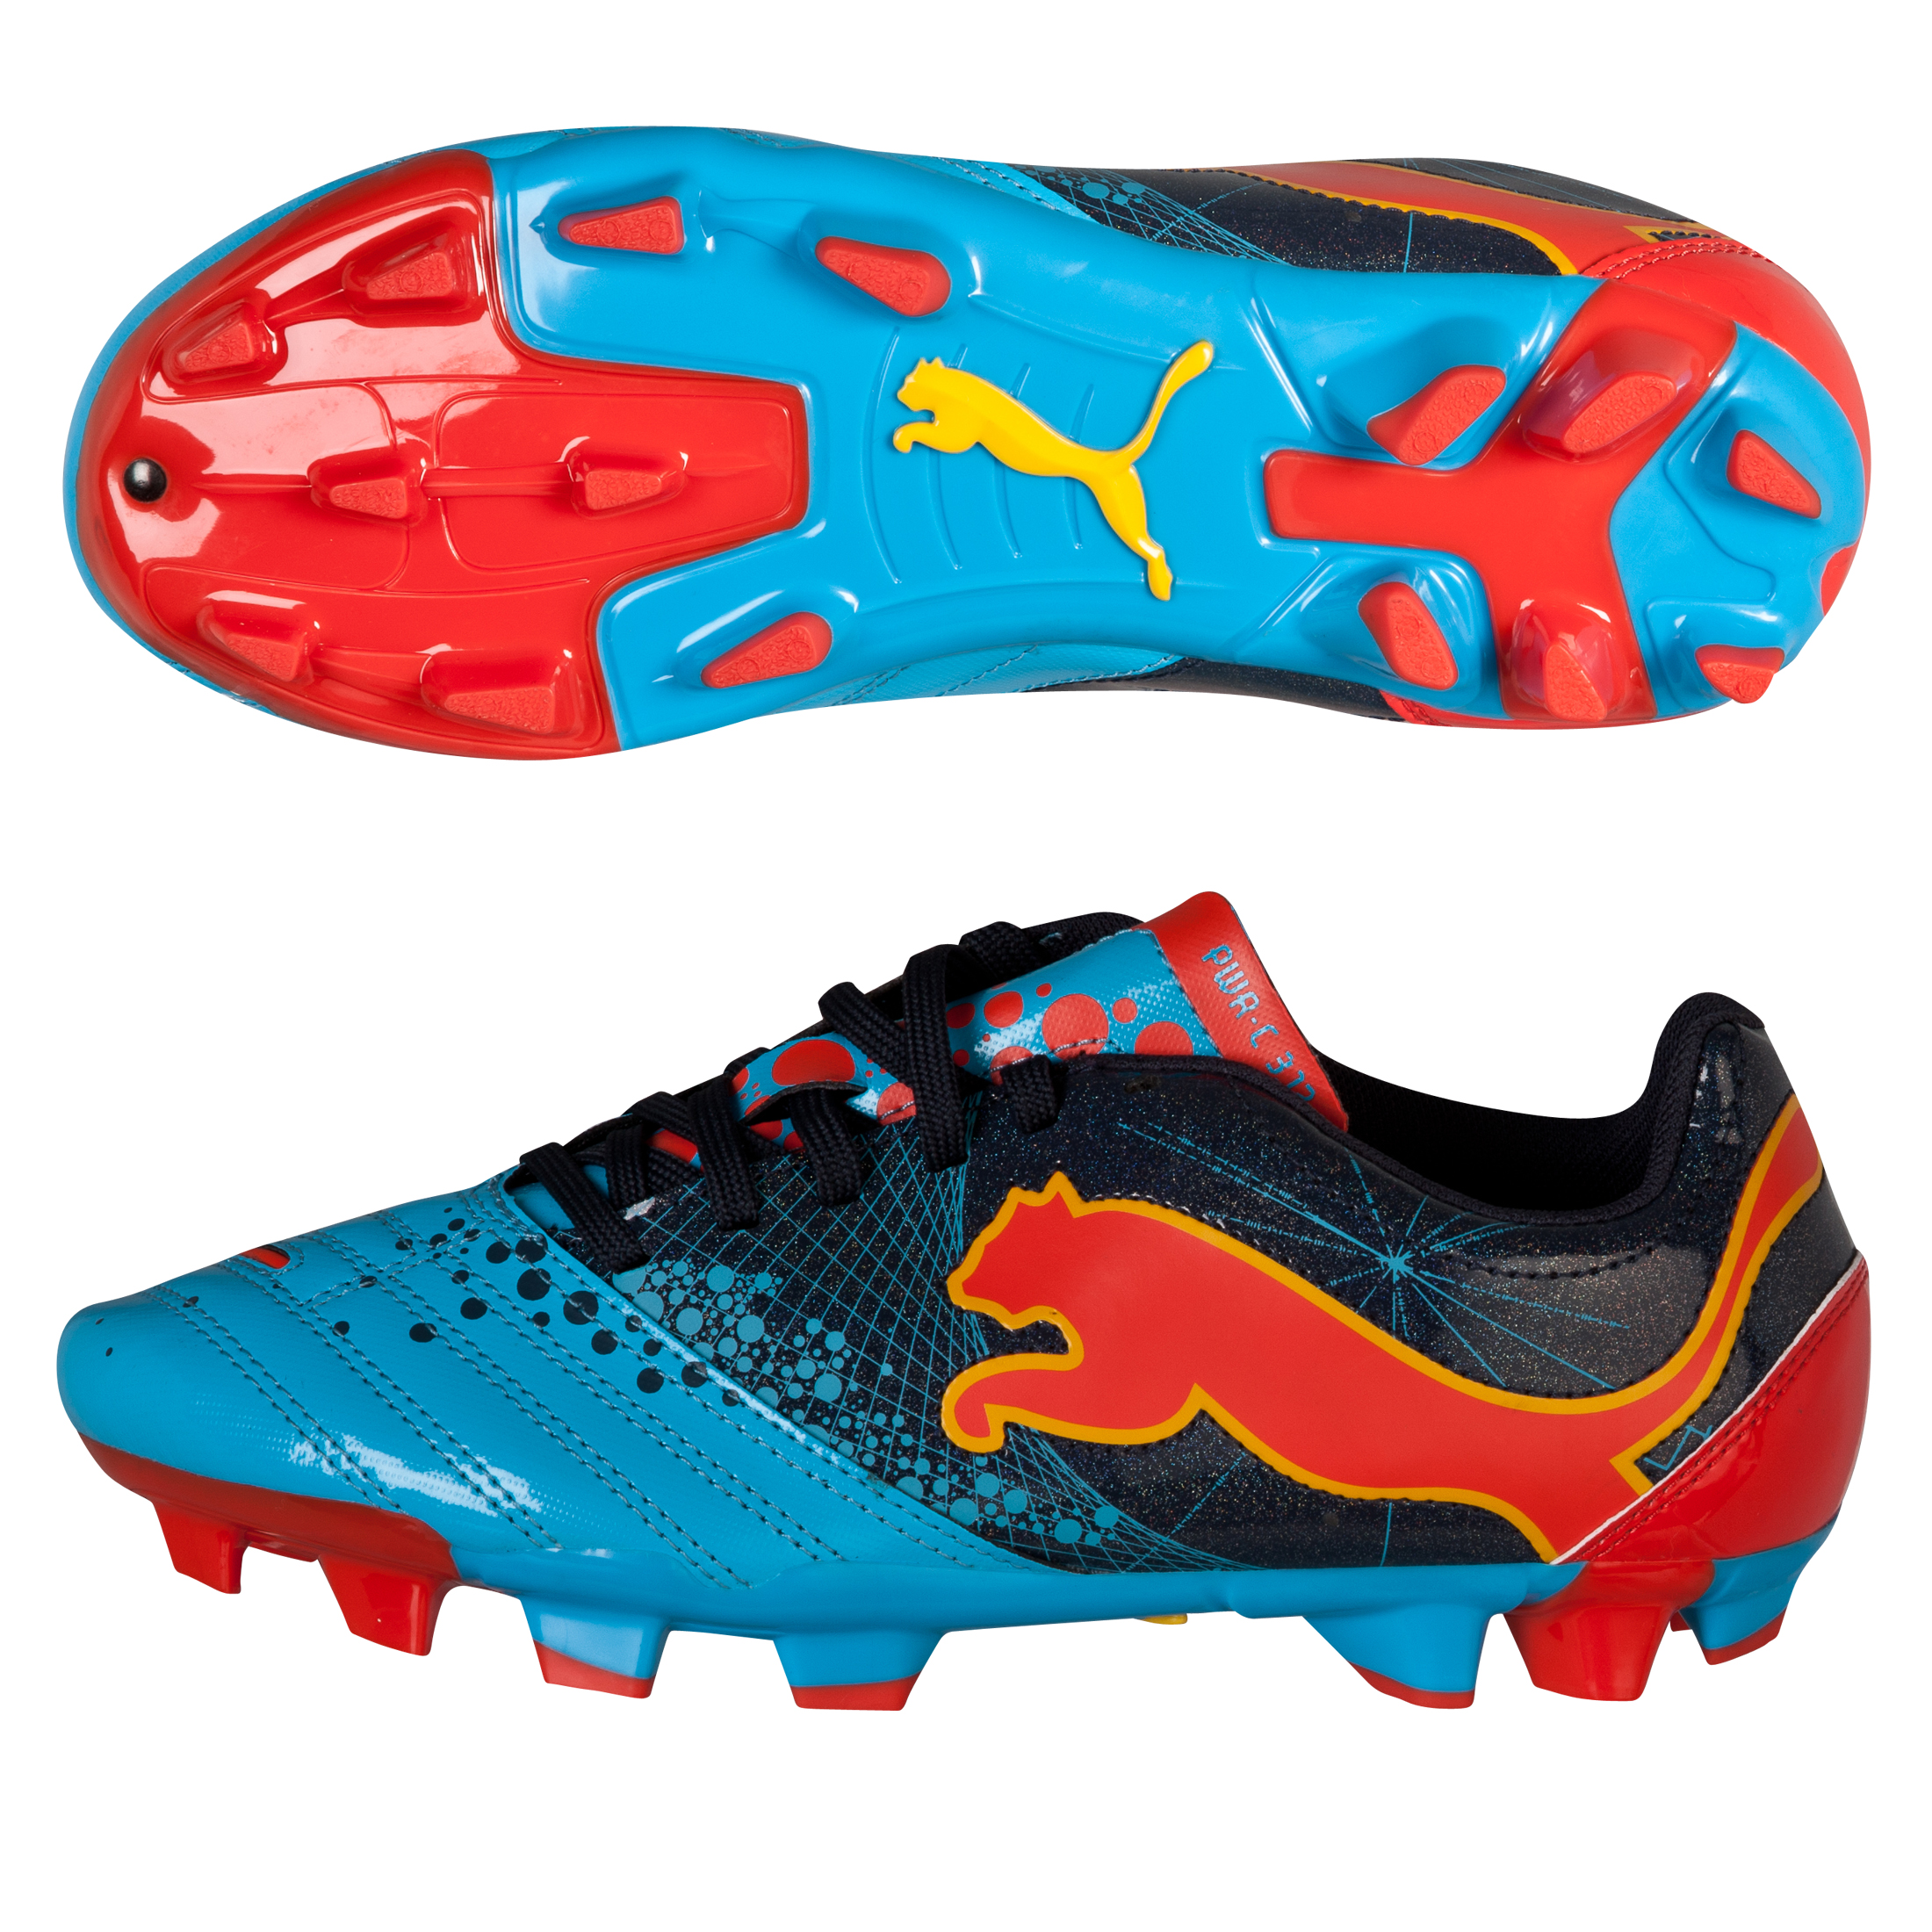 Puma PowerCat 3.12 Firm Ground Football Boots - Kids - Fluo Blue/New Navy/Orange/Team Yellow